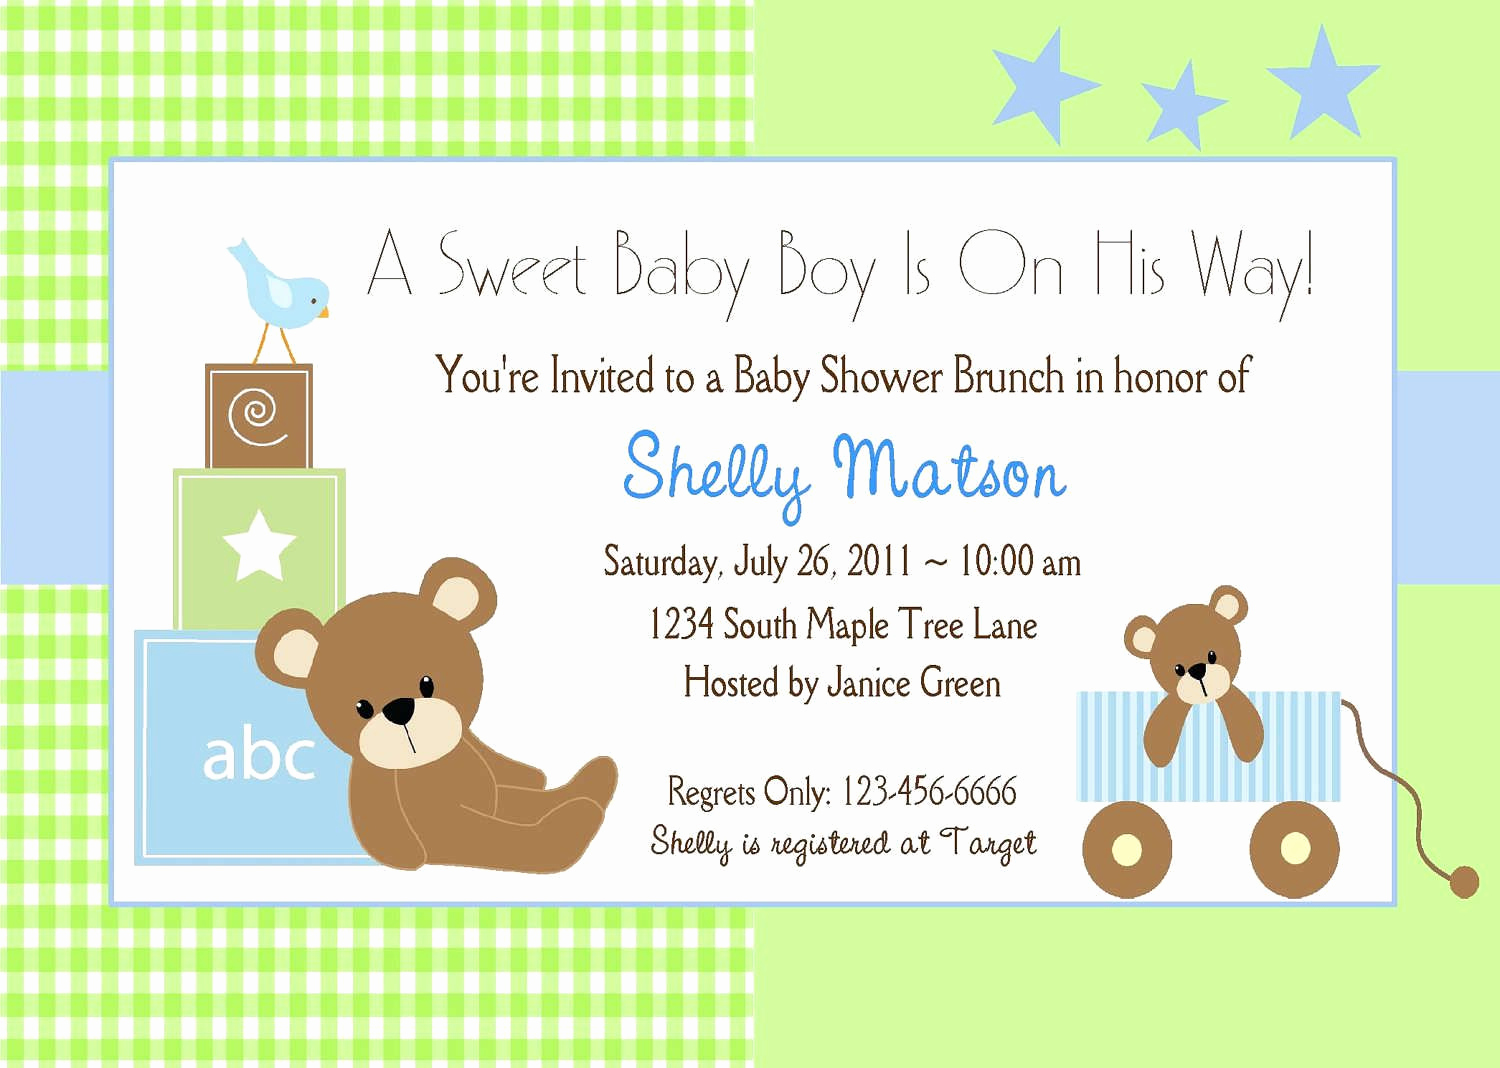 Baby Shower Invitations Templates Editable Elegant Baby Shower Invitation Baby Shower Invitation Templates